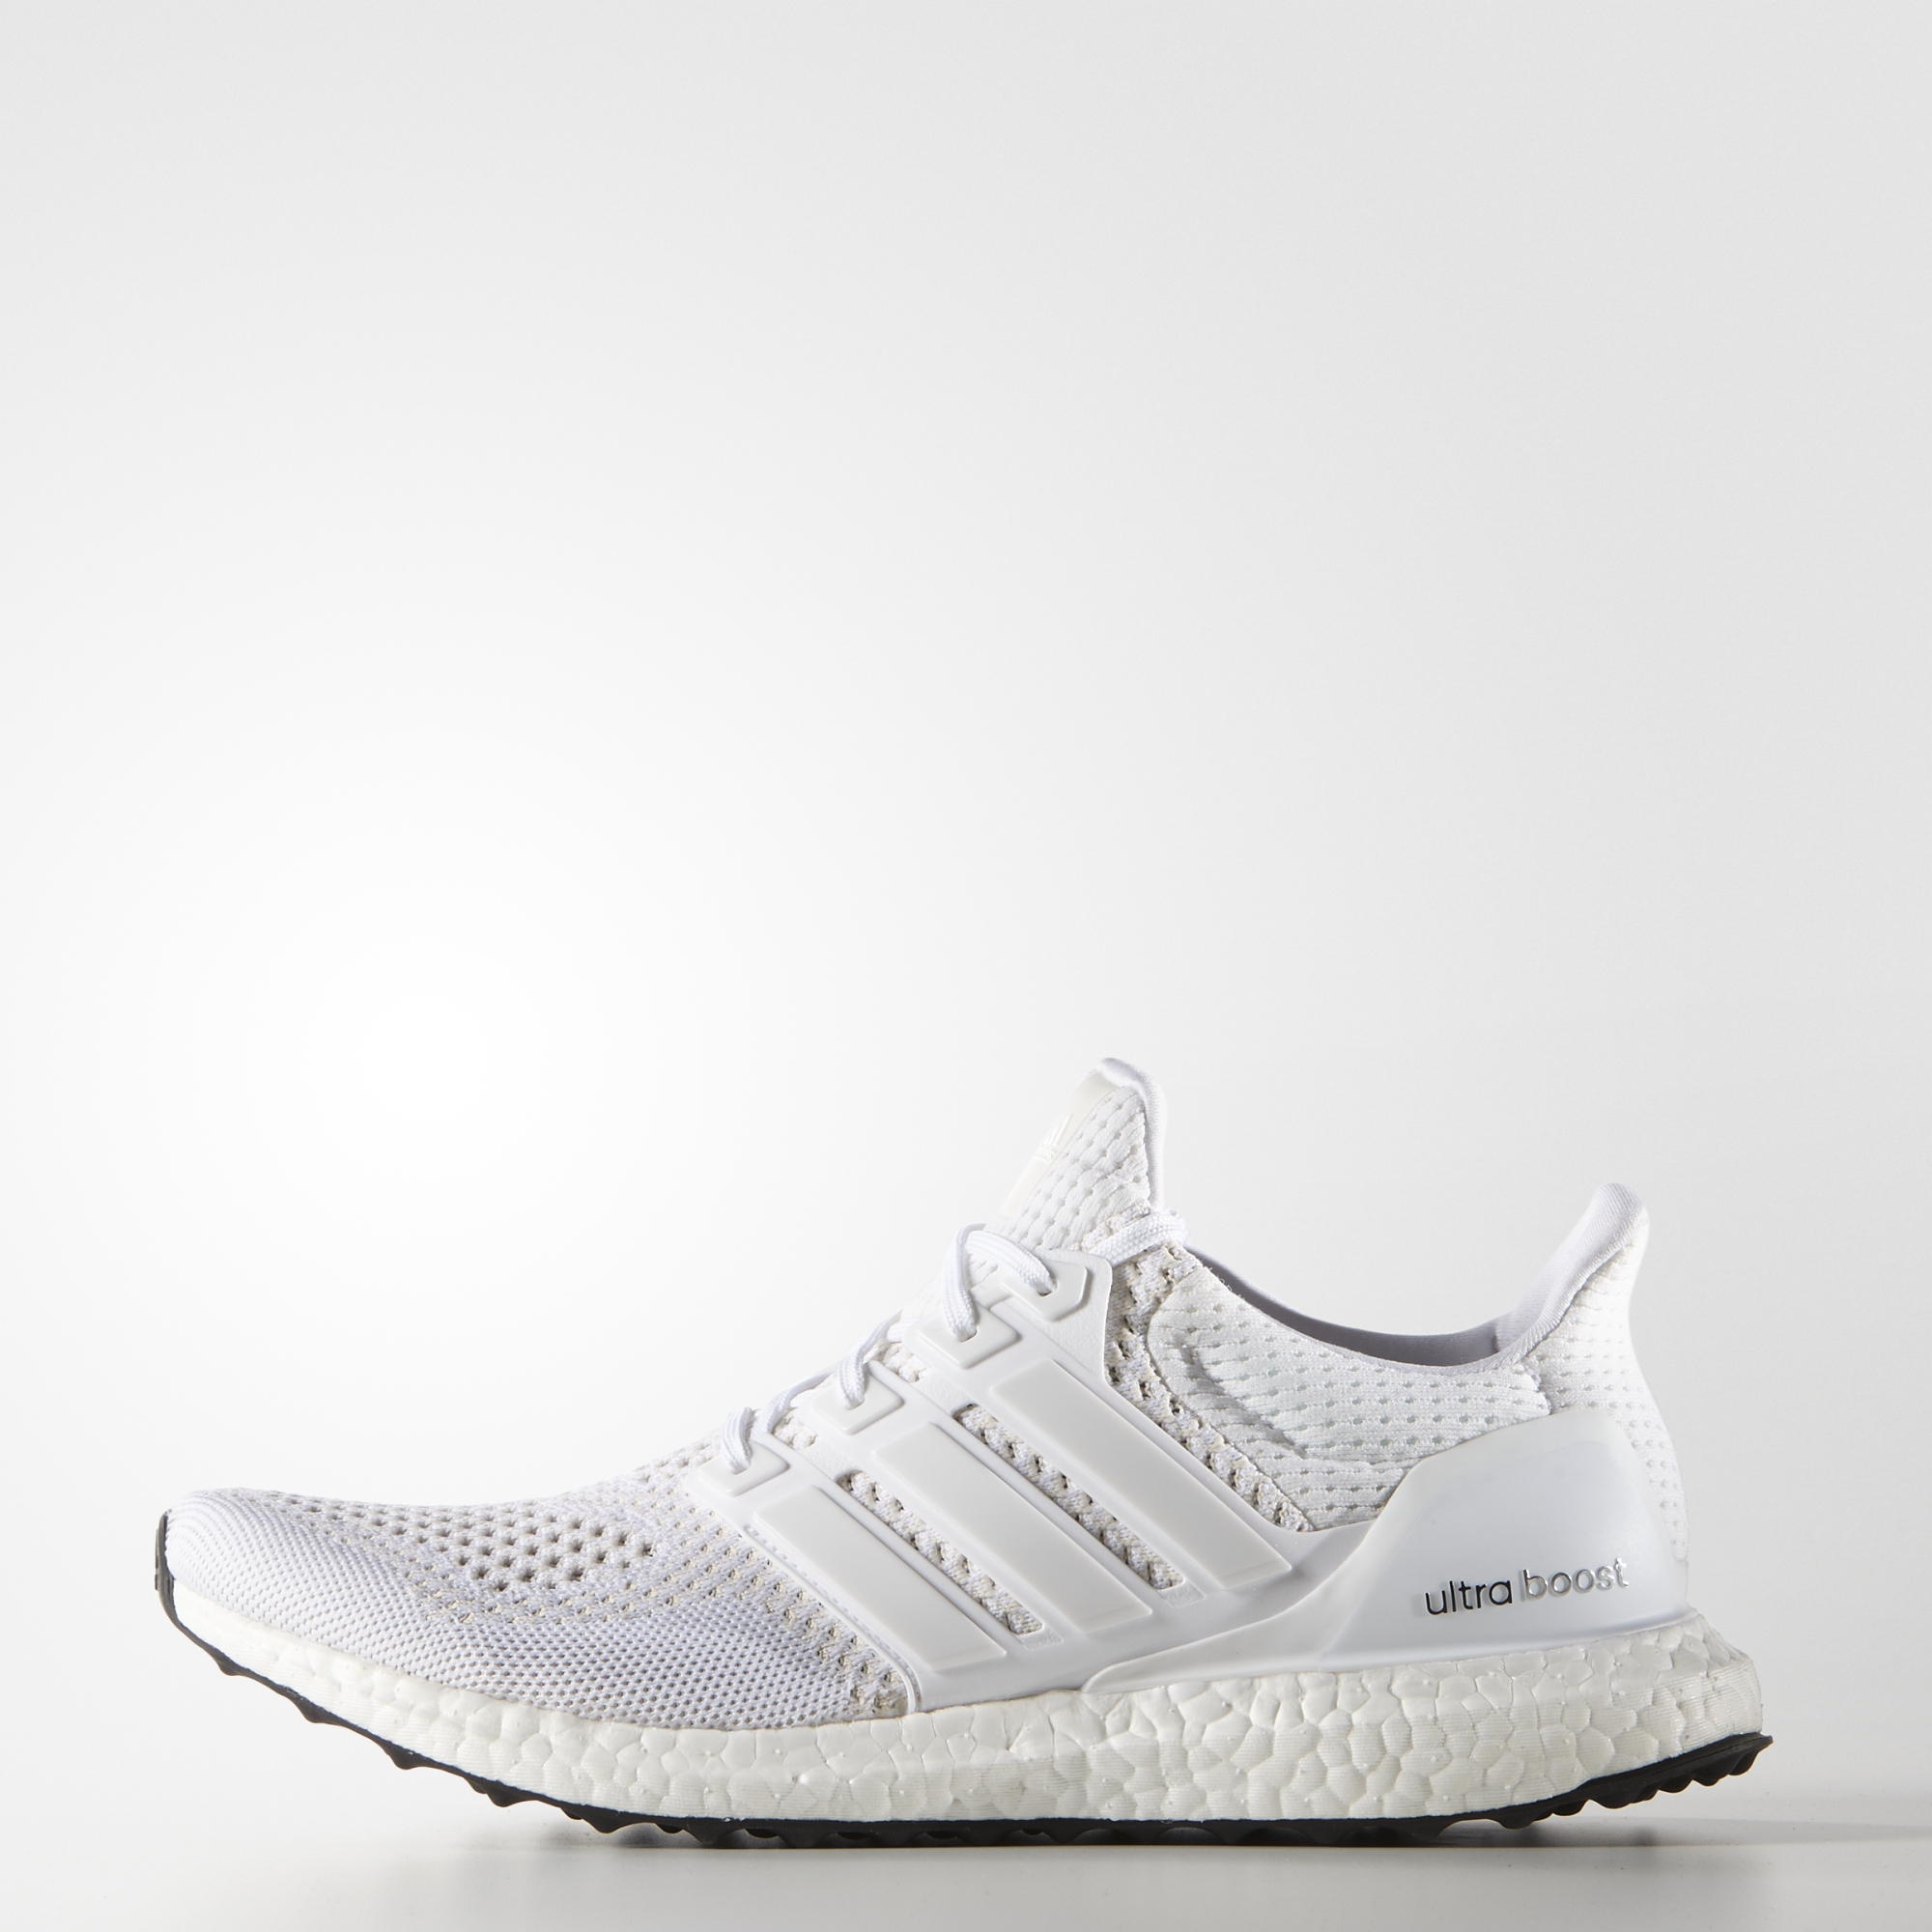 6707e623358 adidas Ultra Boost Shoes - White